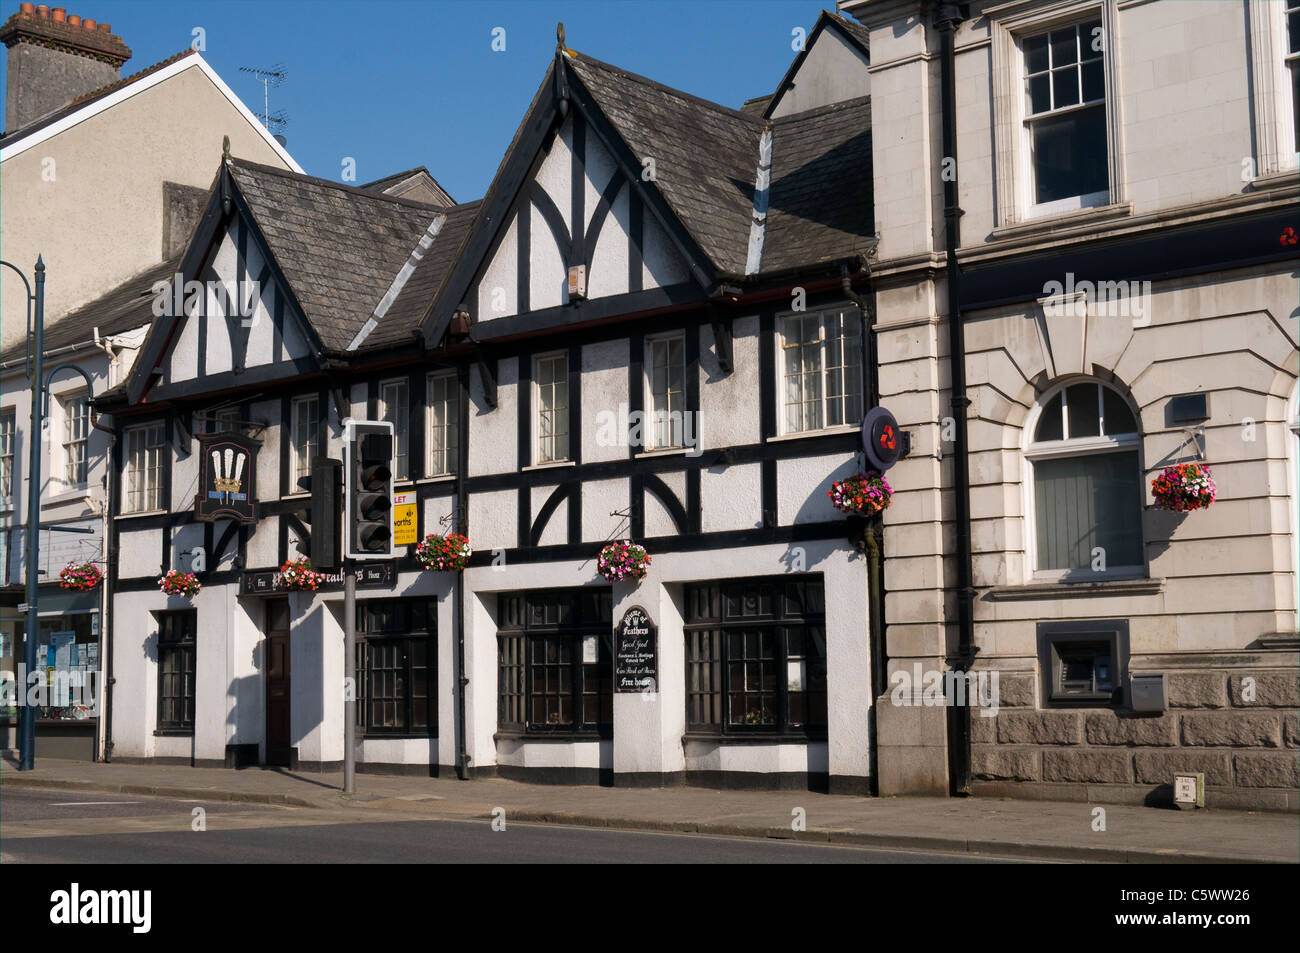 The Plume of Feathers Hotel, is located in Fore Street , Okehampton, Devon. The building was available for lease - Stock Image